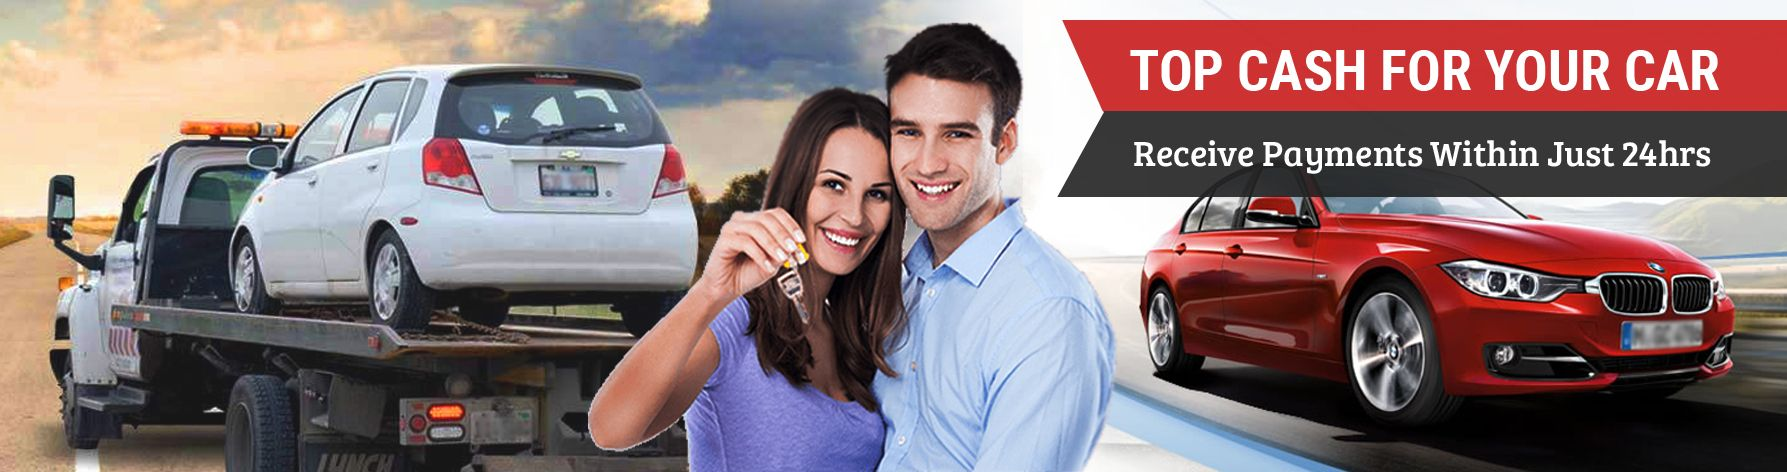 Top cash for cars in any condition We buy cars, trucks, vans, 4x4s ...